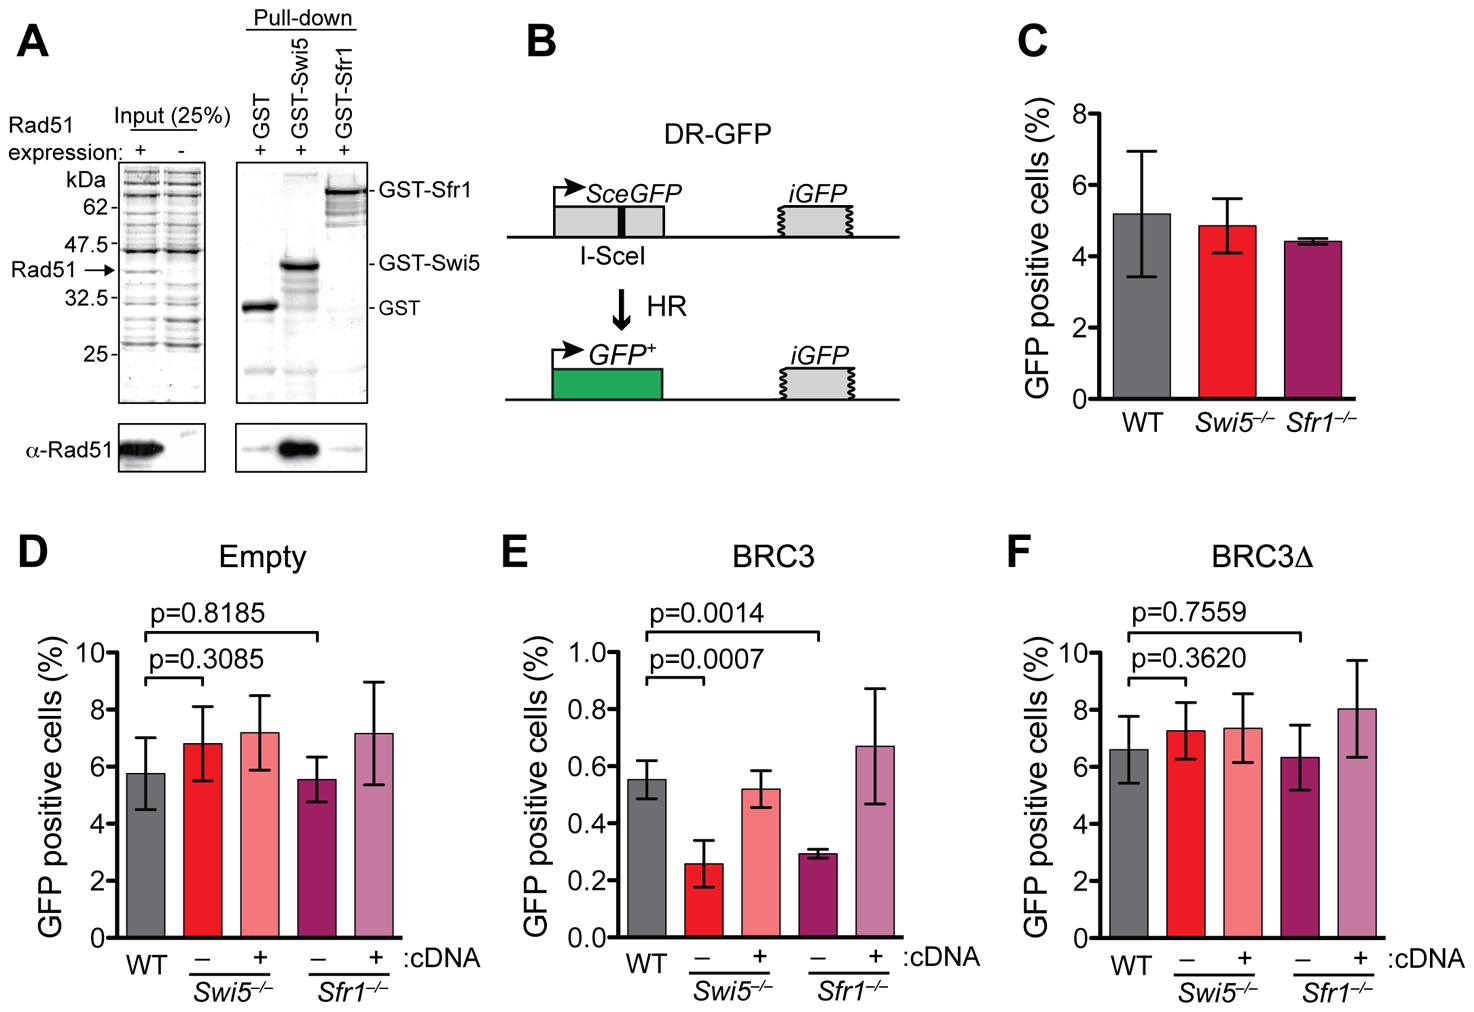 Swi5 and Sfr1 have a role in HR in mammalian cells.